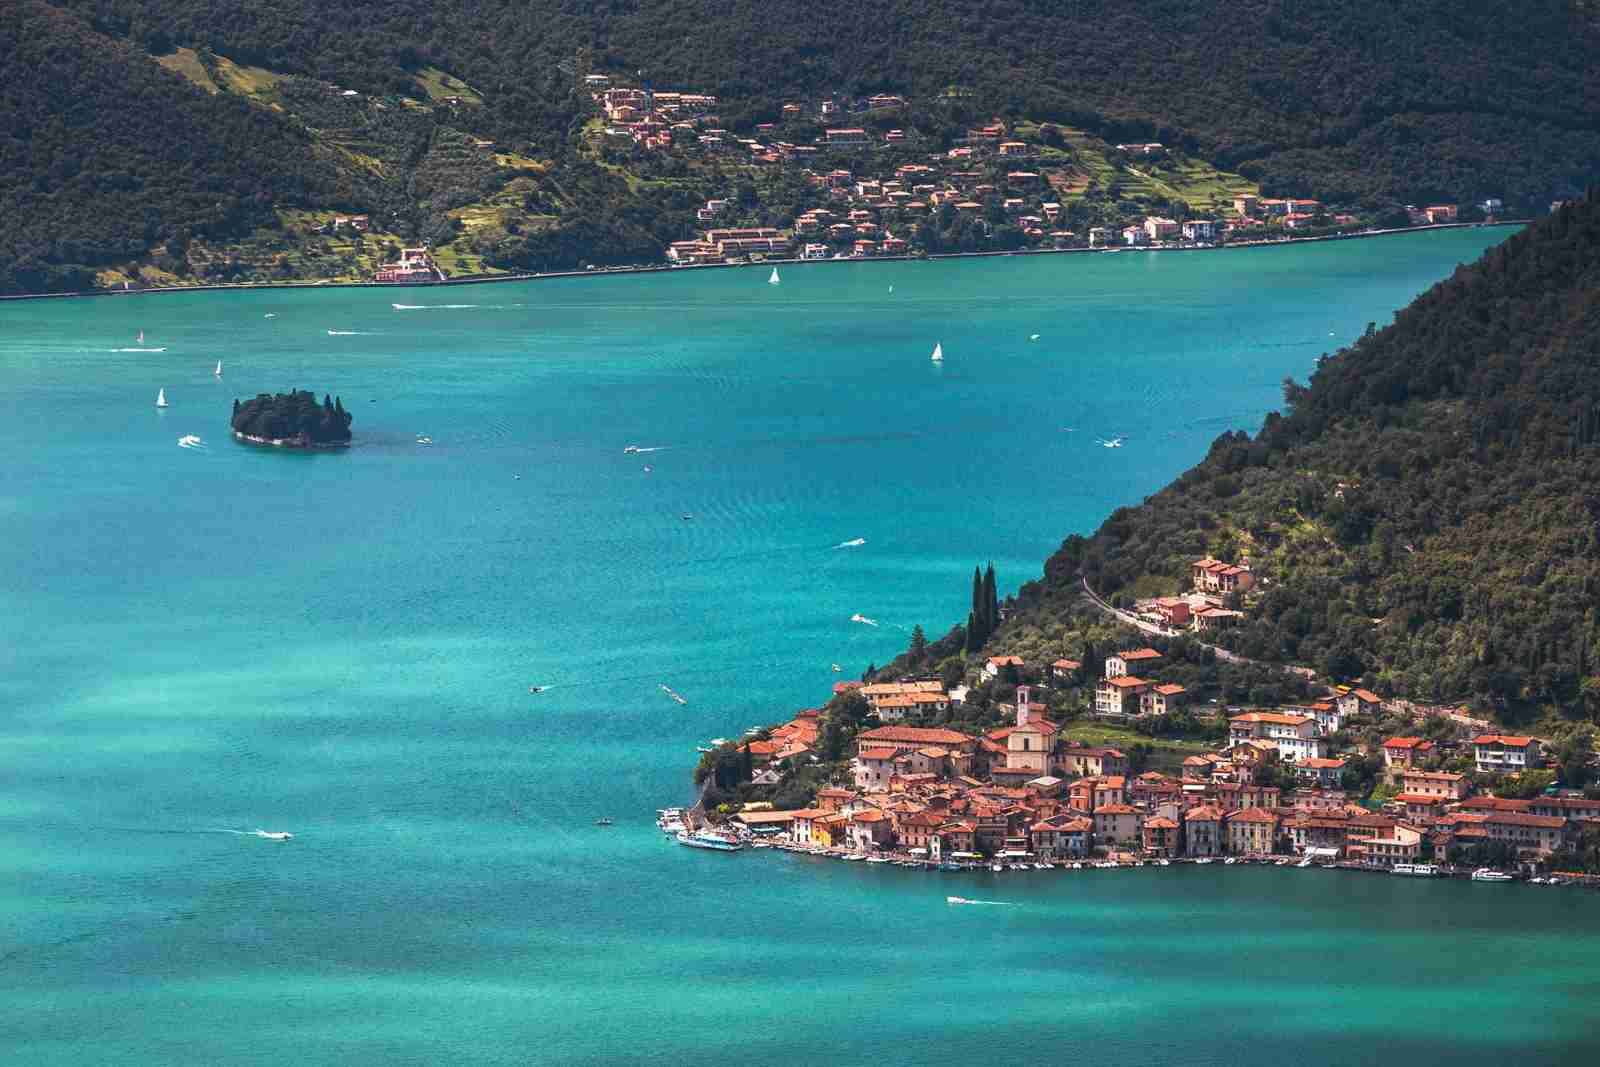 Monte Isola and Lake Iseo. (Photo by Matteo Rinaldi - RiMa Photo/Getty Images)